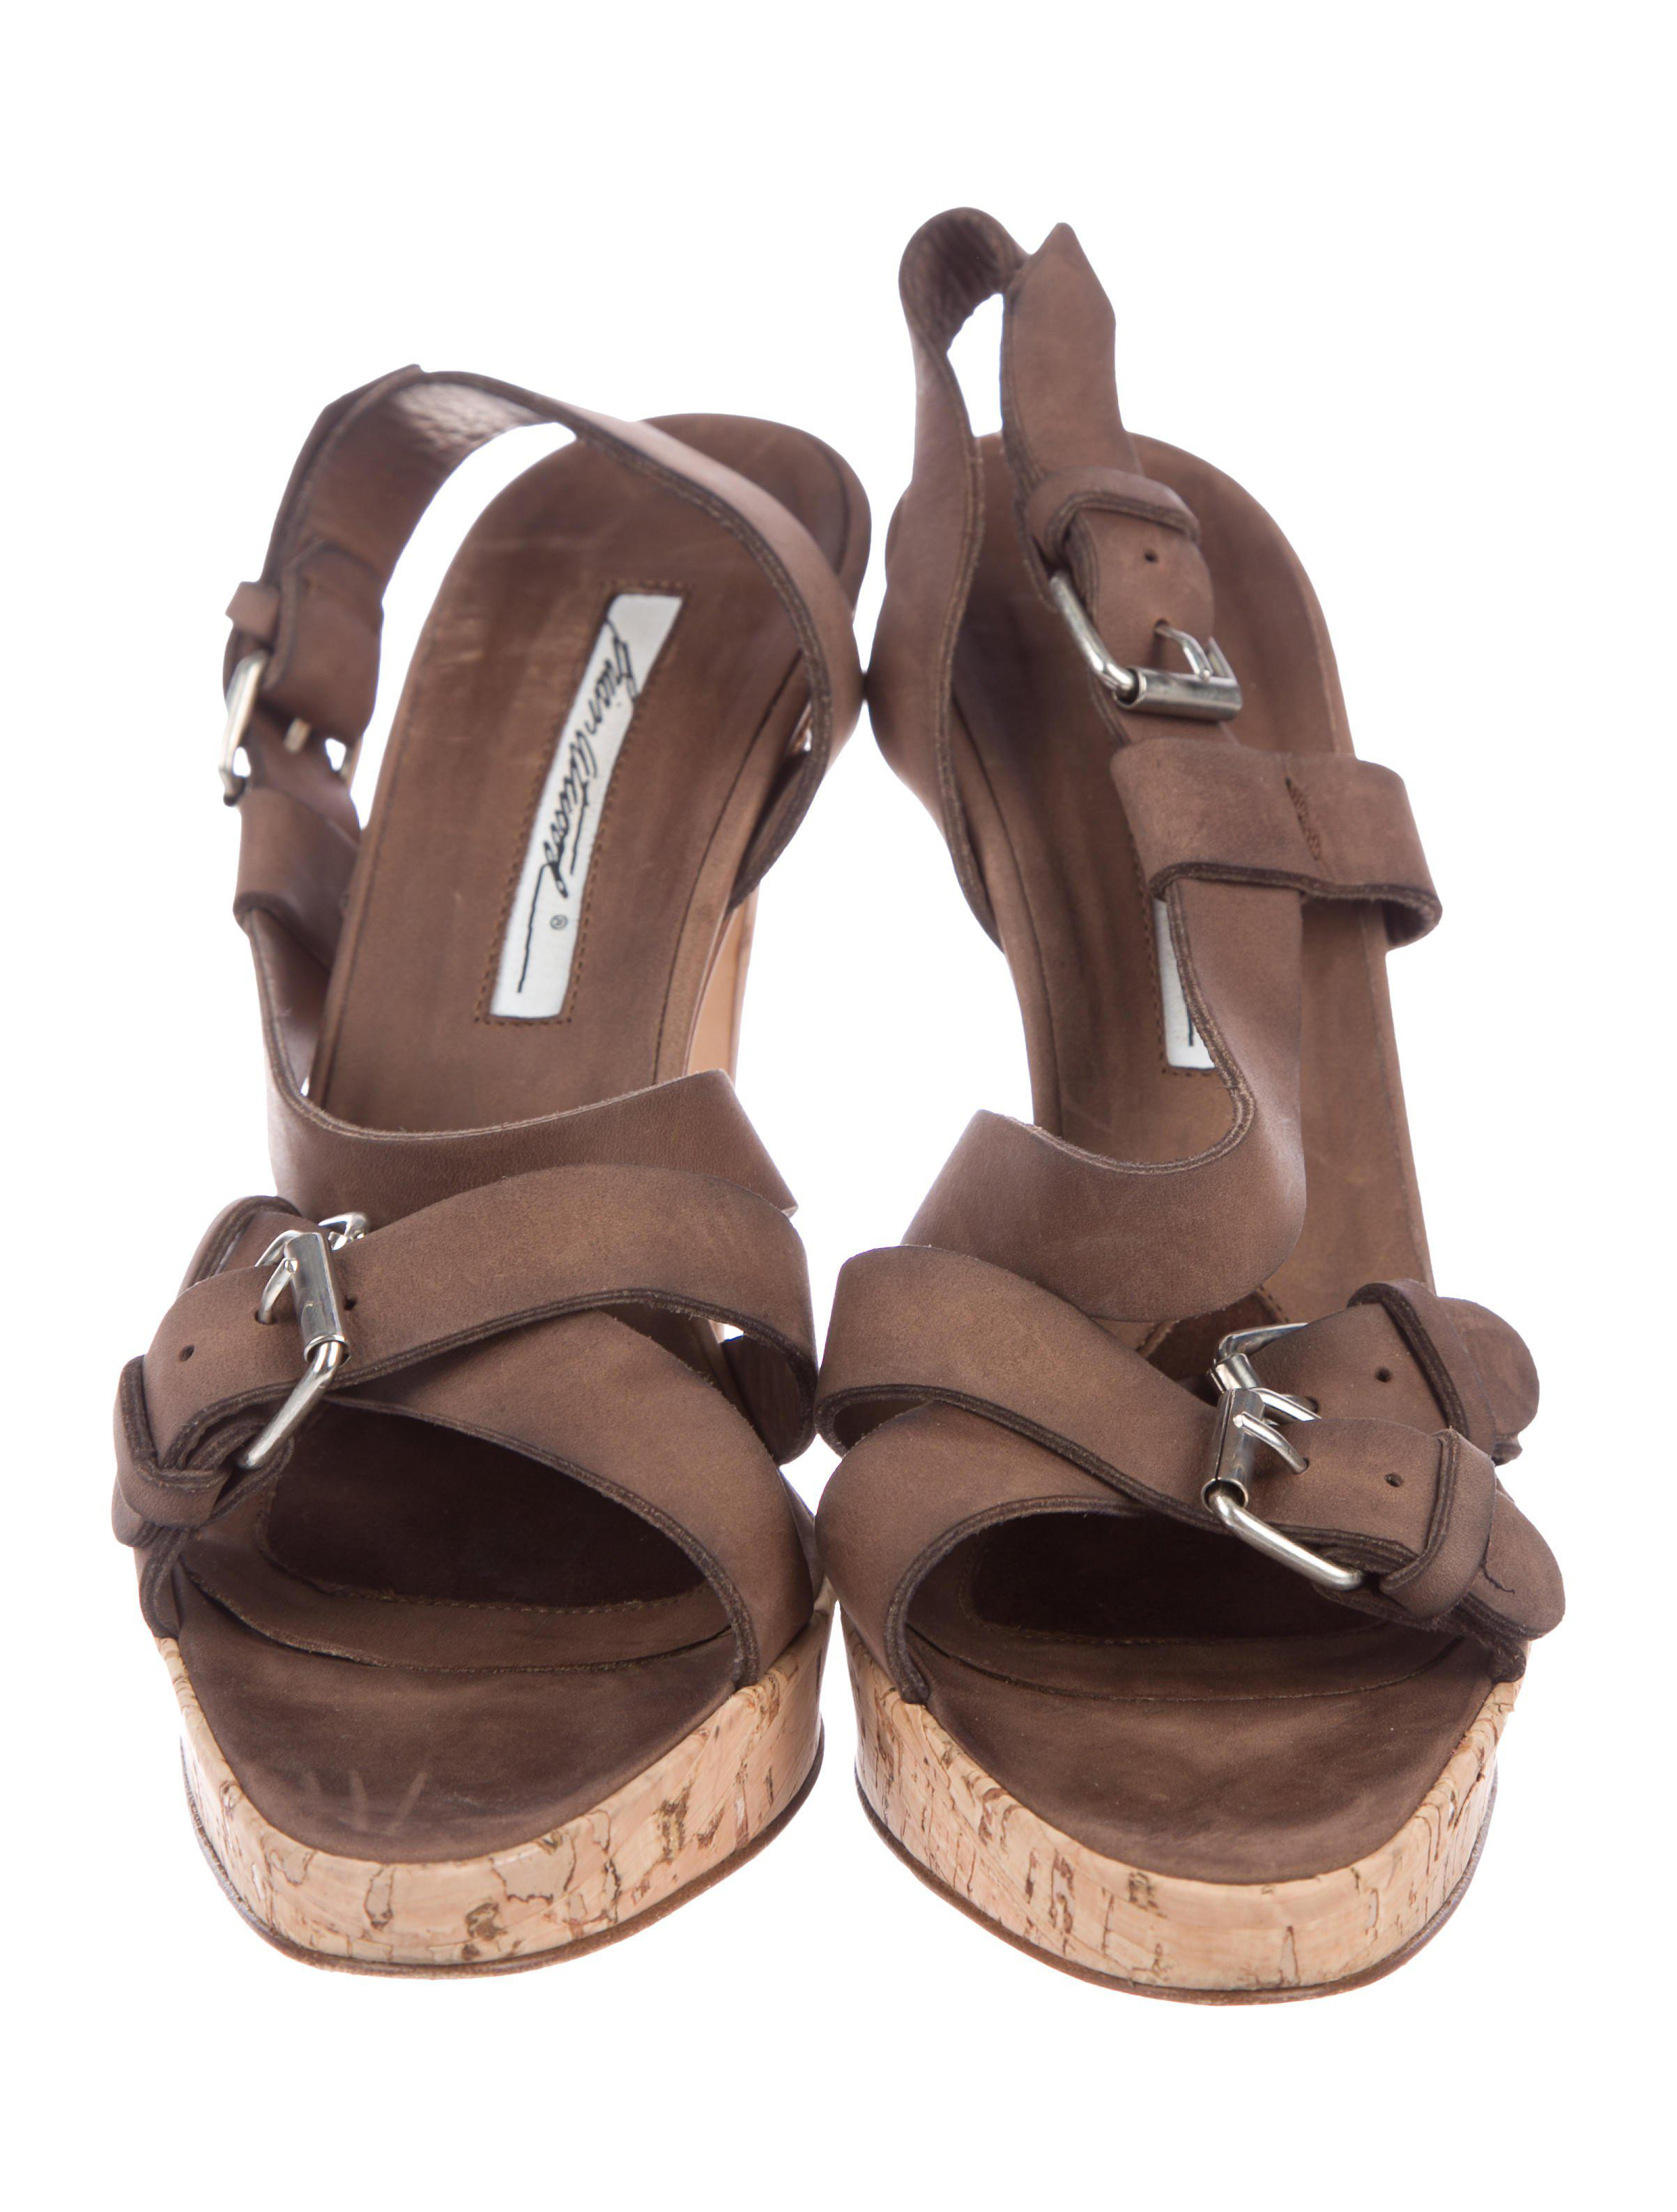 free shipping store Brian Atwood Chopper Girl Slingback Sandals limited edition cheap price KP3NFVa